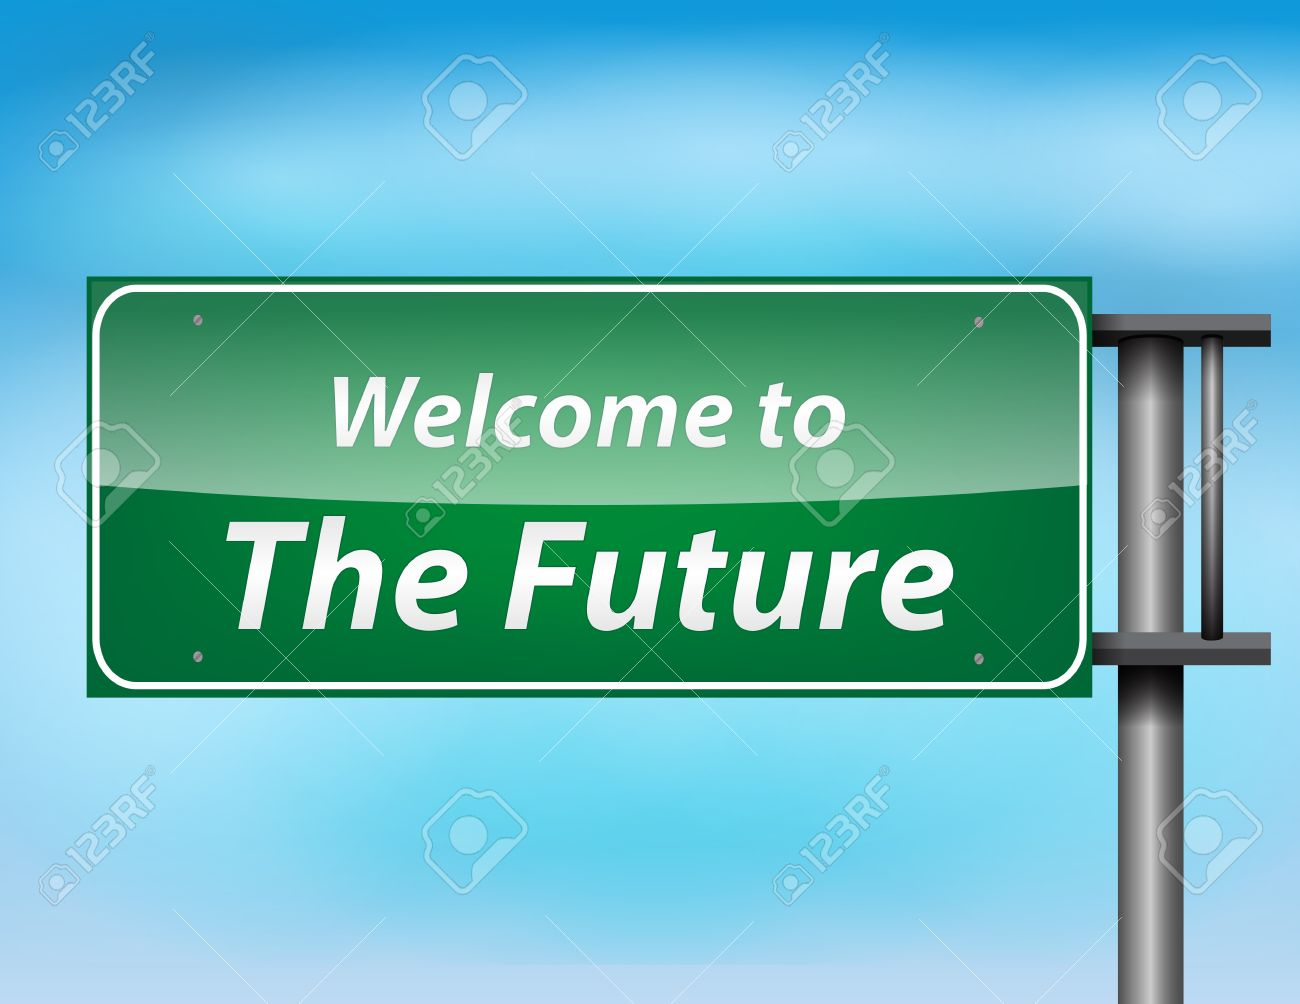 Glossy highway sign with 'welcome to thefuture' text on a blue background. Stock Vector - 17513533